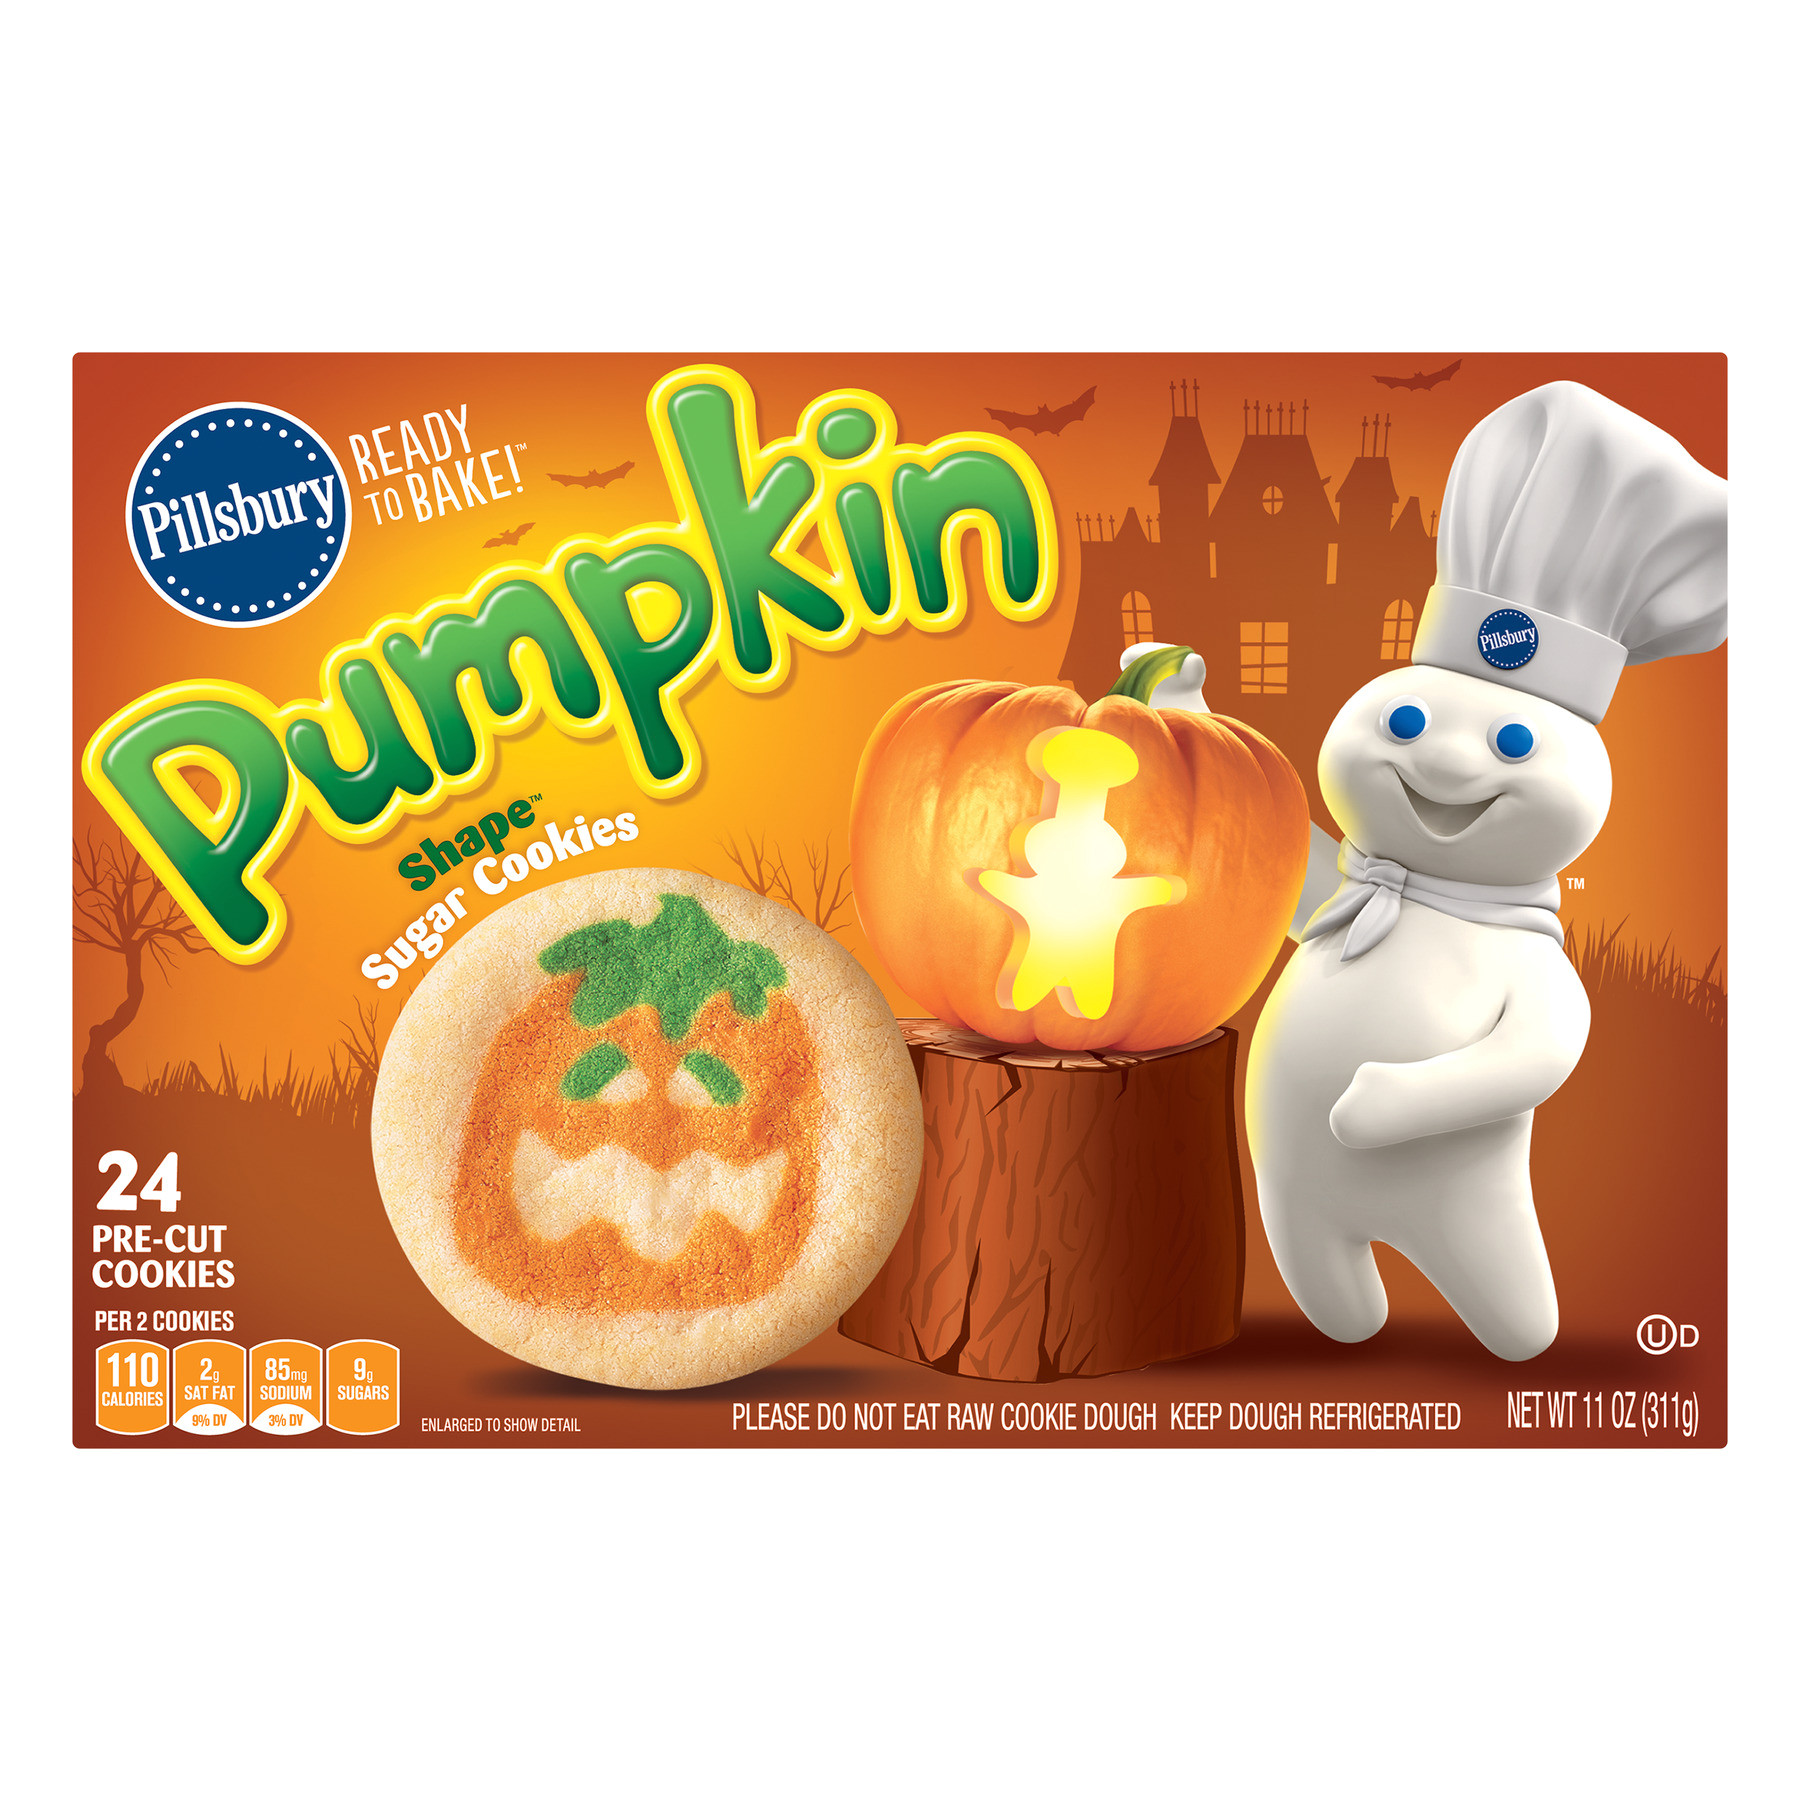 pillsbury ready to bake a pumpkin shapea sugar cookies 11 0 oz walmart com